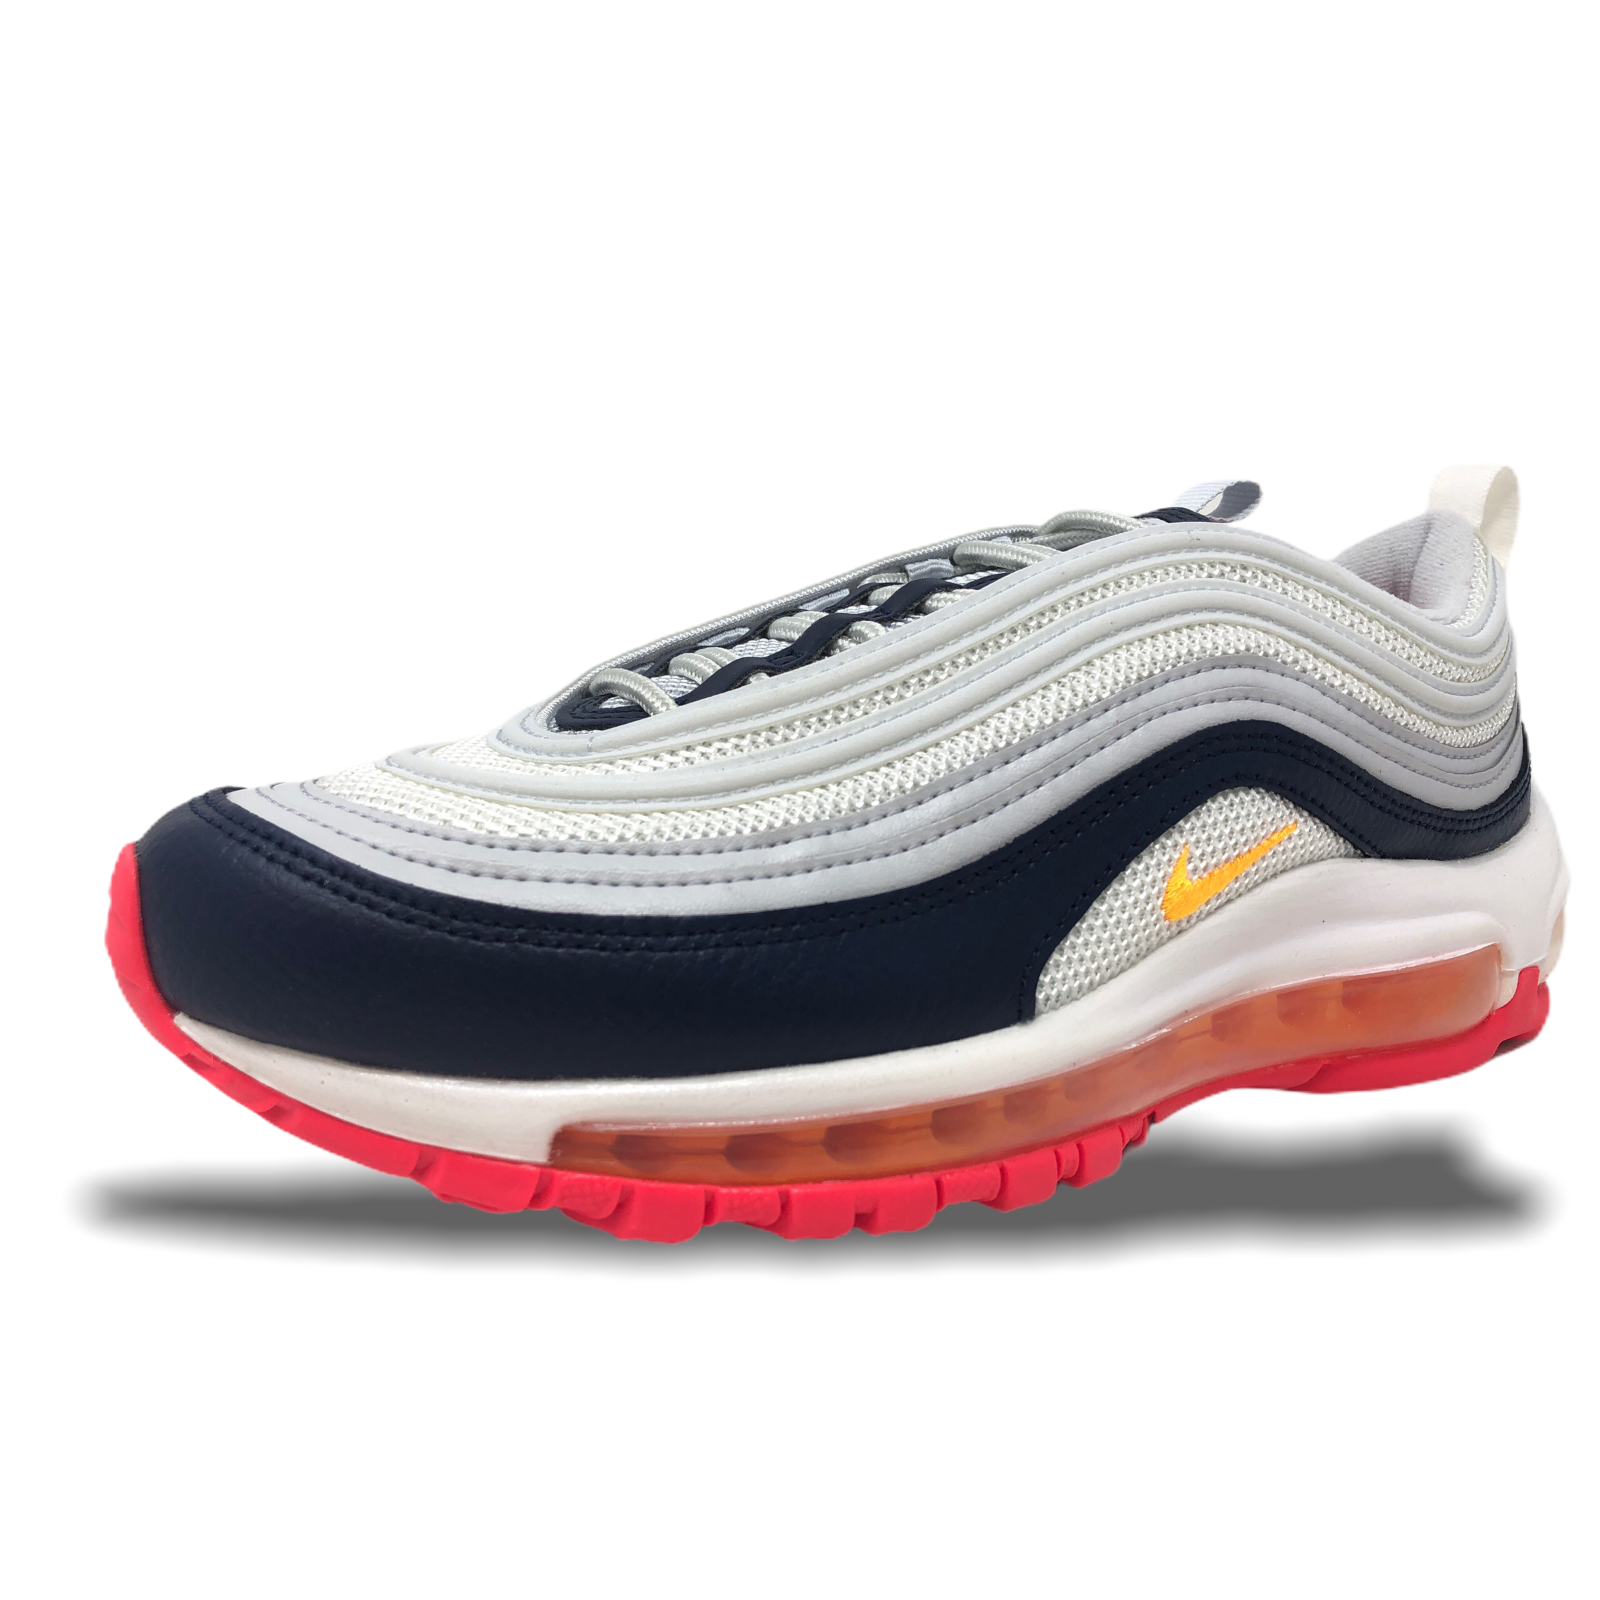 Primary image for Womens Nike Air Max 97 Pure Platinum/Laser Orange Lifestyle Running 921733 015